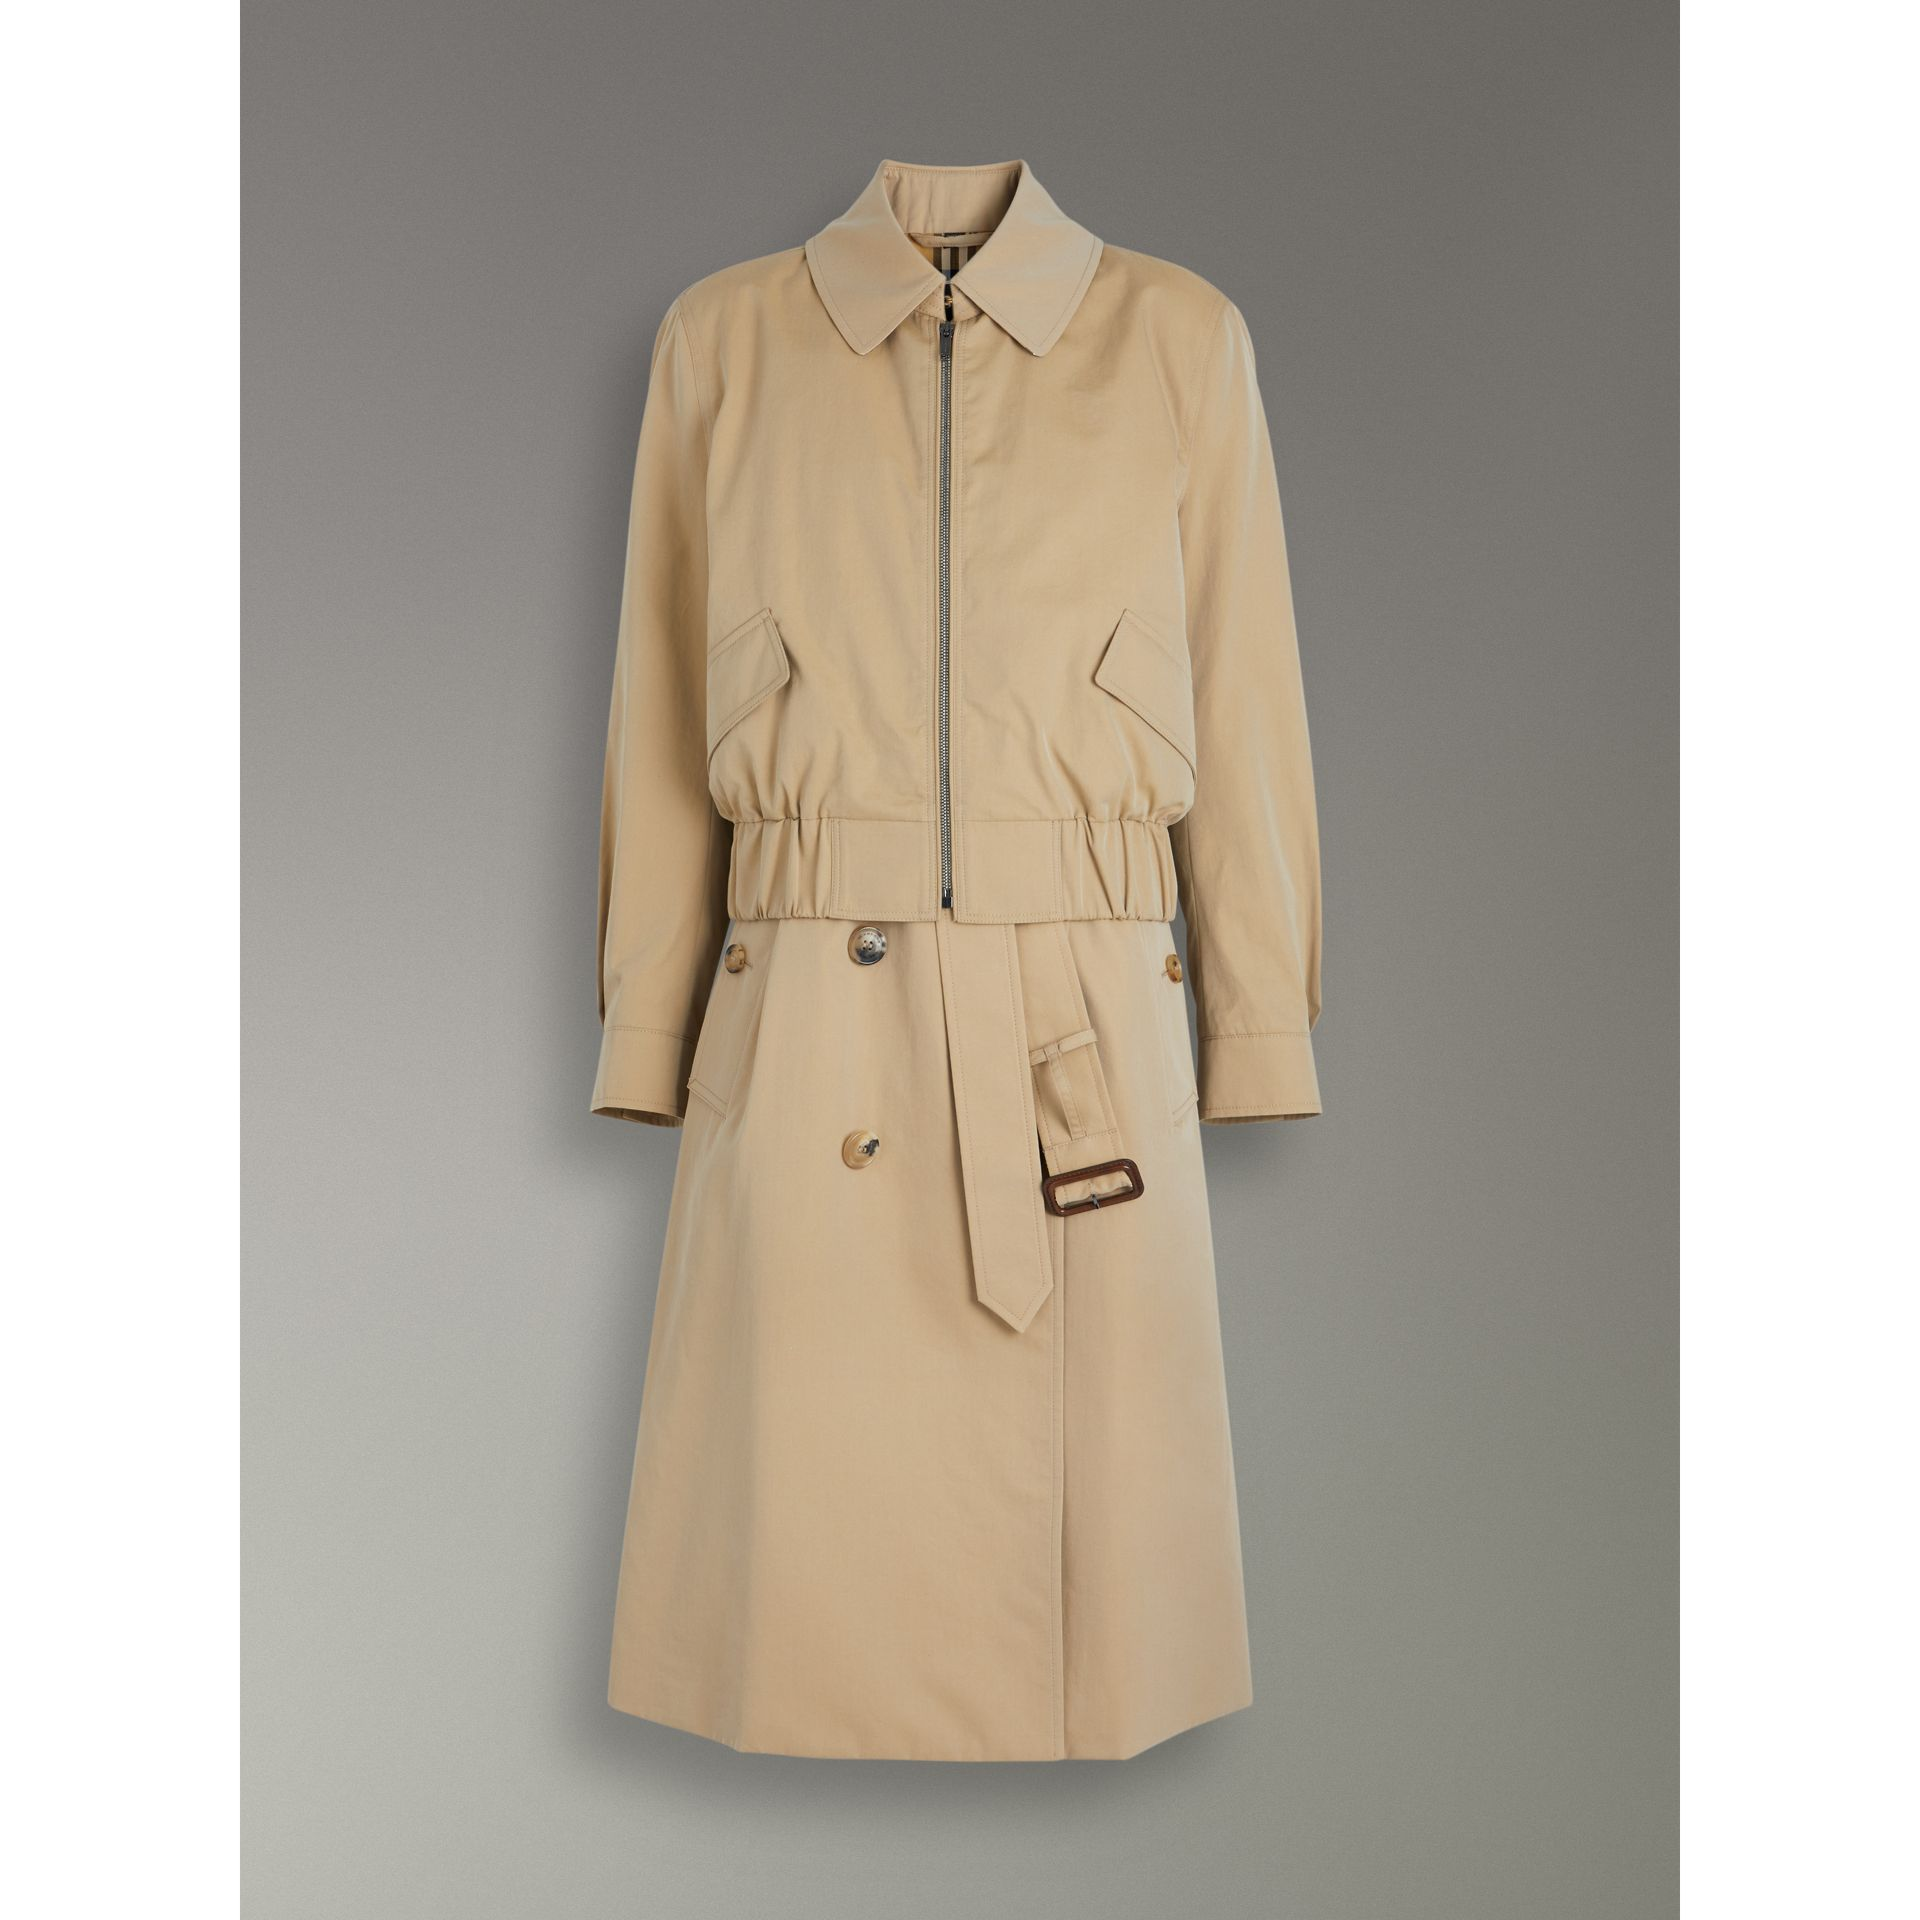 Trench coat Harrington ricostruito in gabardine tropicale (Miele) - Donna | Burberry - immagine della galleria 3